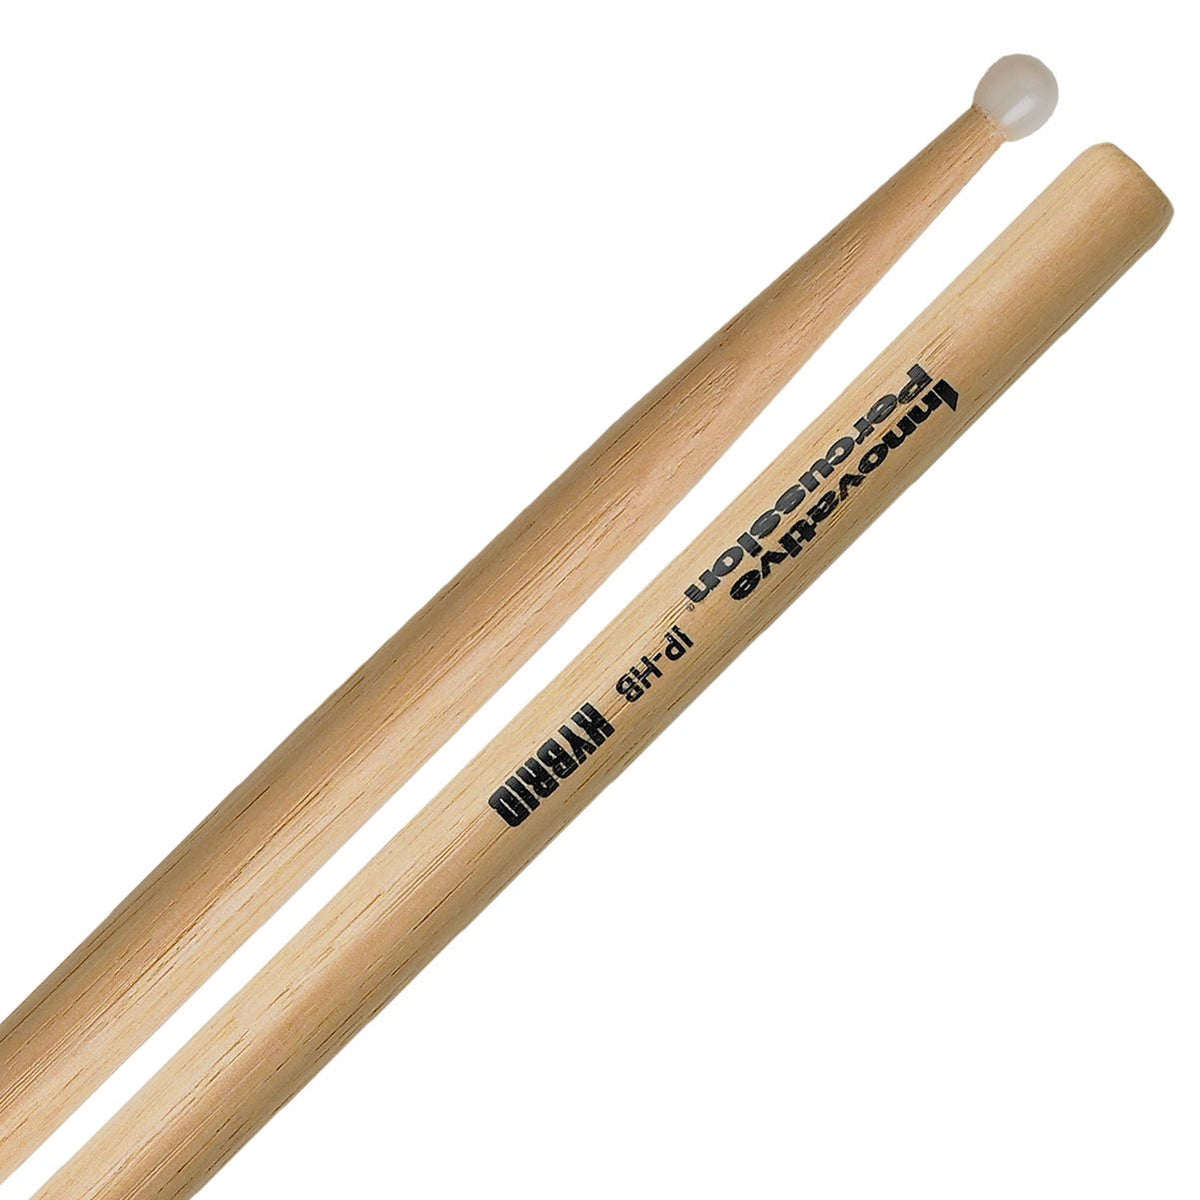 Innovative Percussion - Innovation Series Drumset Drumsticks-Percussion-Innovative Percussion-IP-HB Hybrid-Music Elements